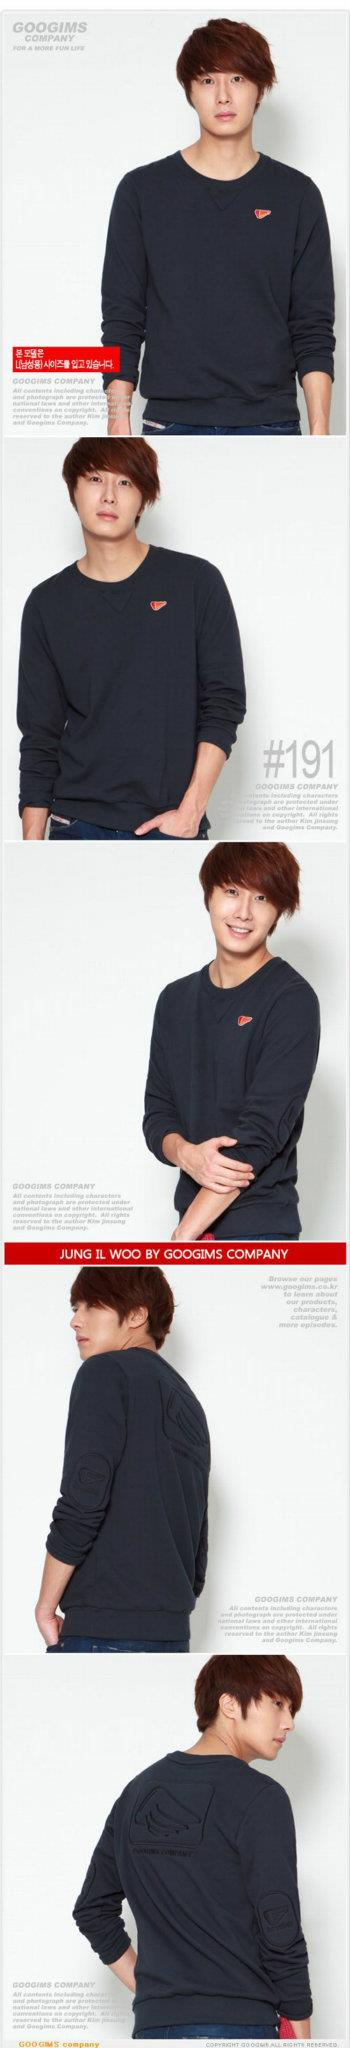 2011 10 Jung II-woo for Googims. Part 100036